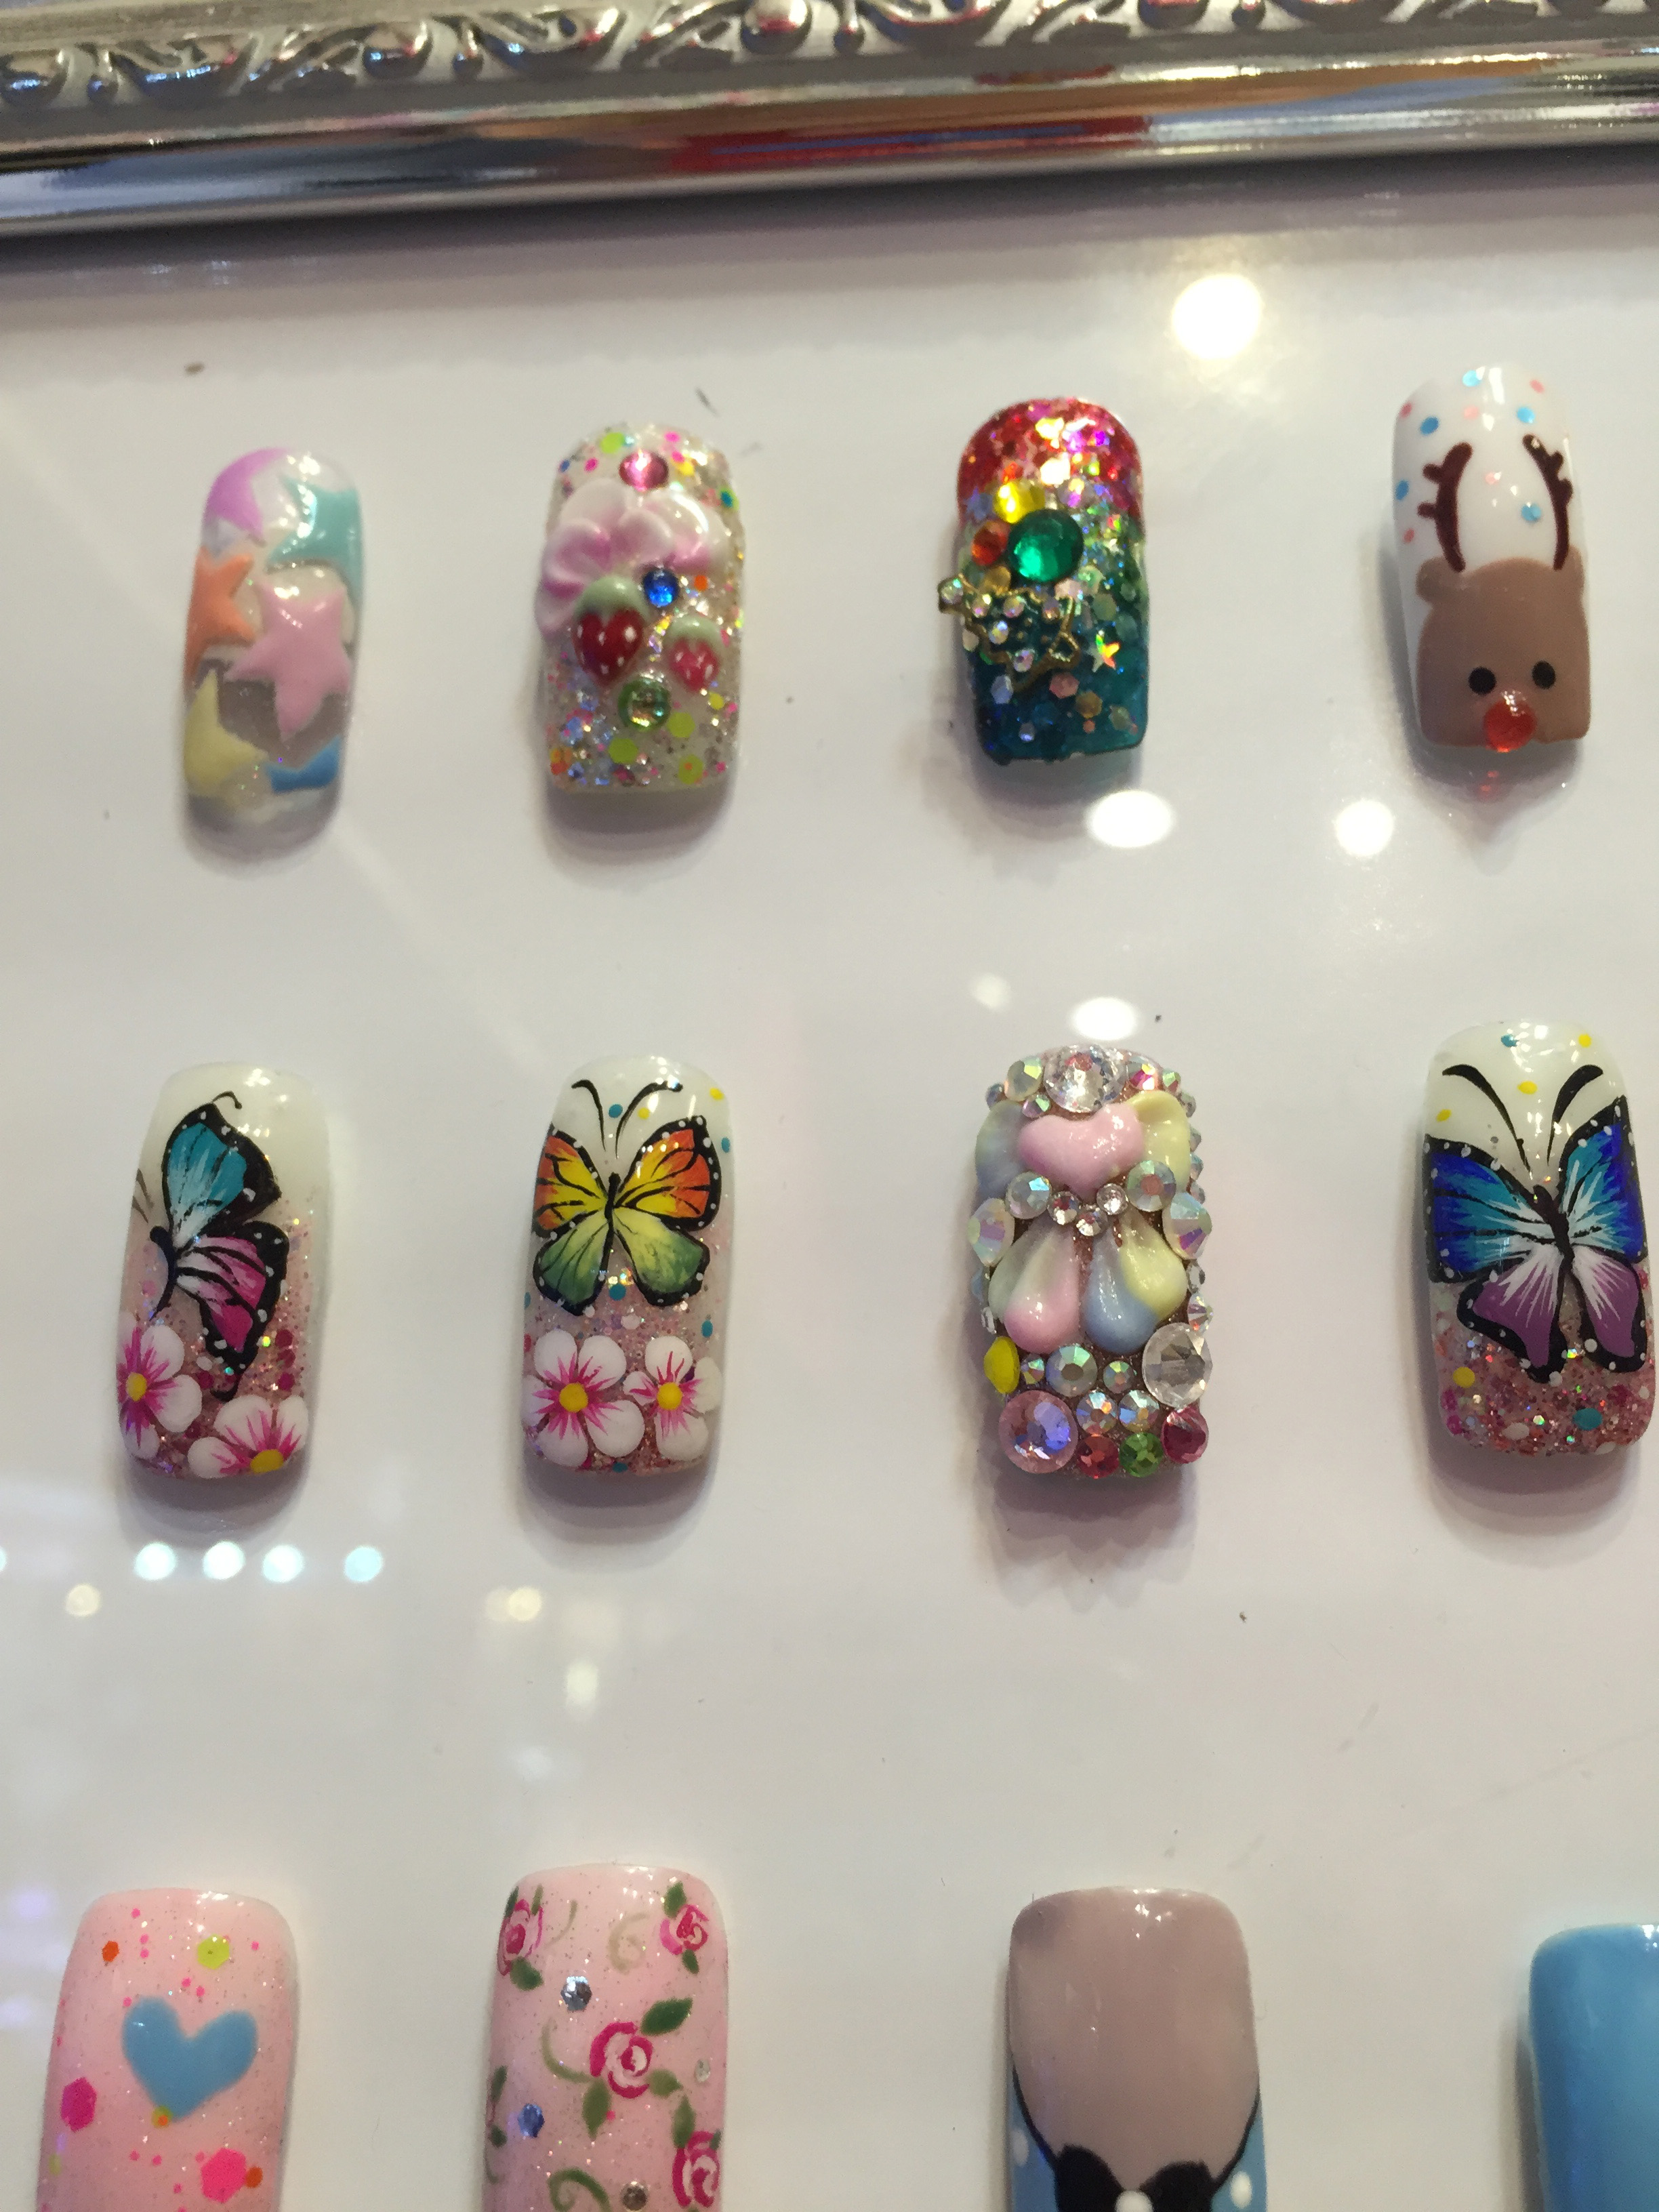 Where to find the best nail salon artists in bangkok the for Acrylic nails salon prices